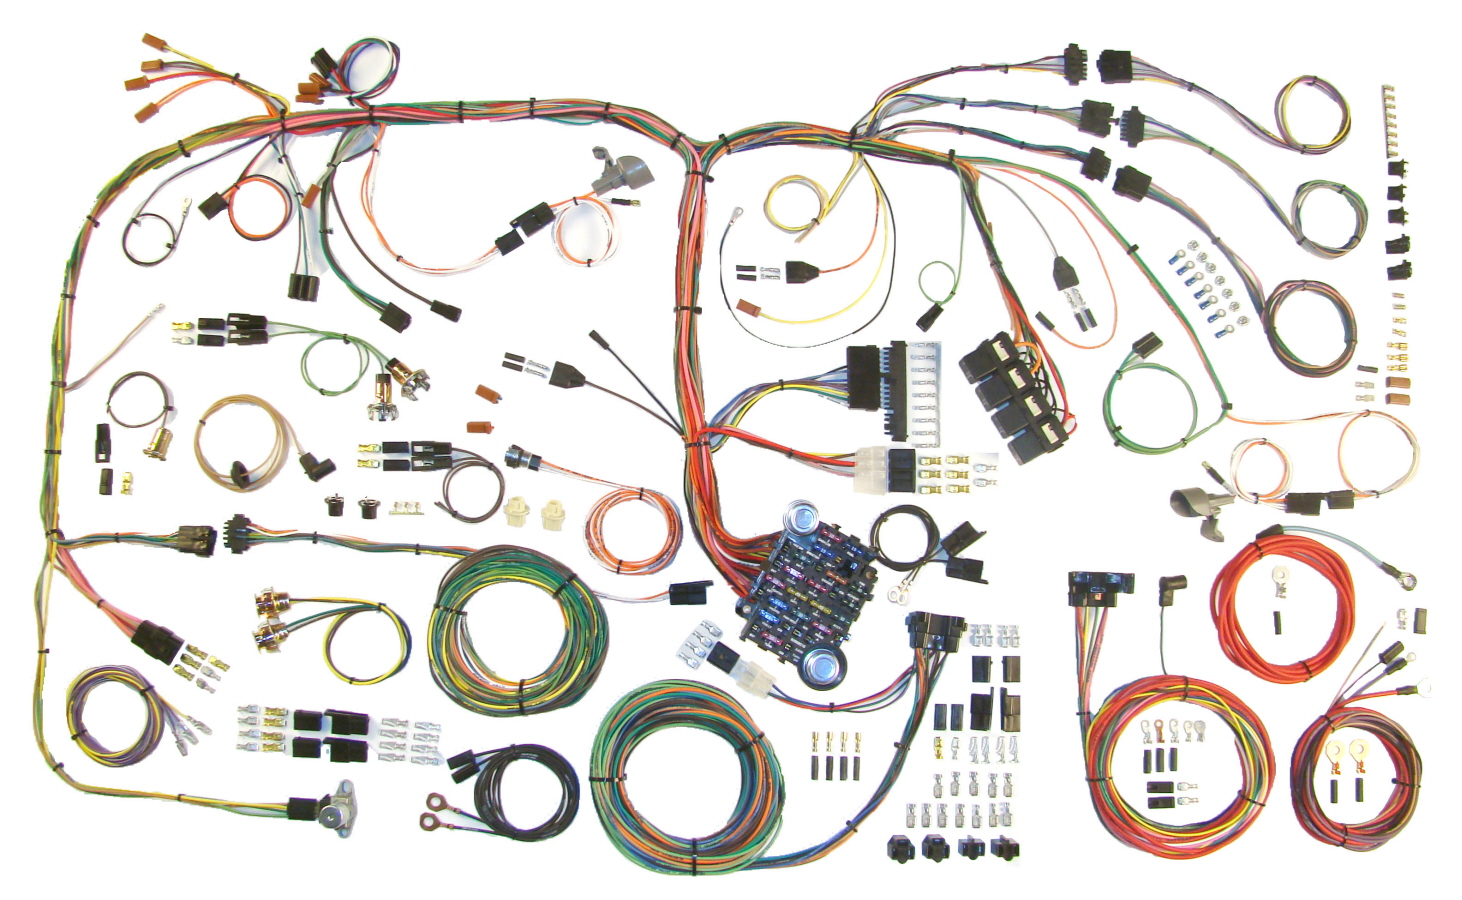 l_510289 70 74 mopar e body classic update wiring harness 510289 mopar a body engine wiring harness at bakdesigns.co